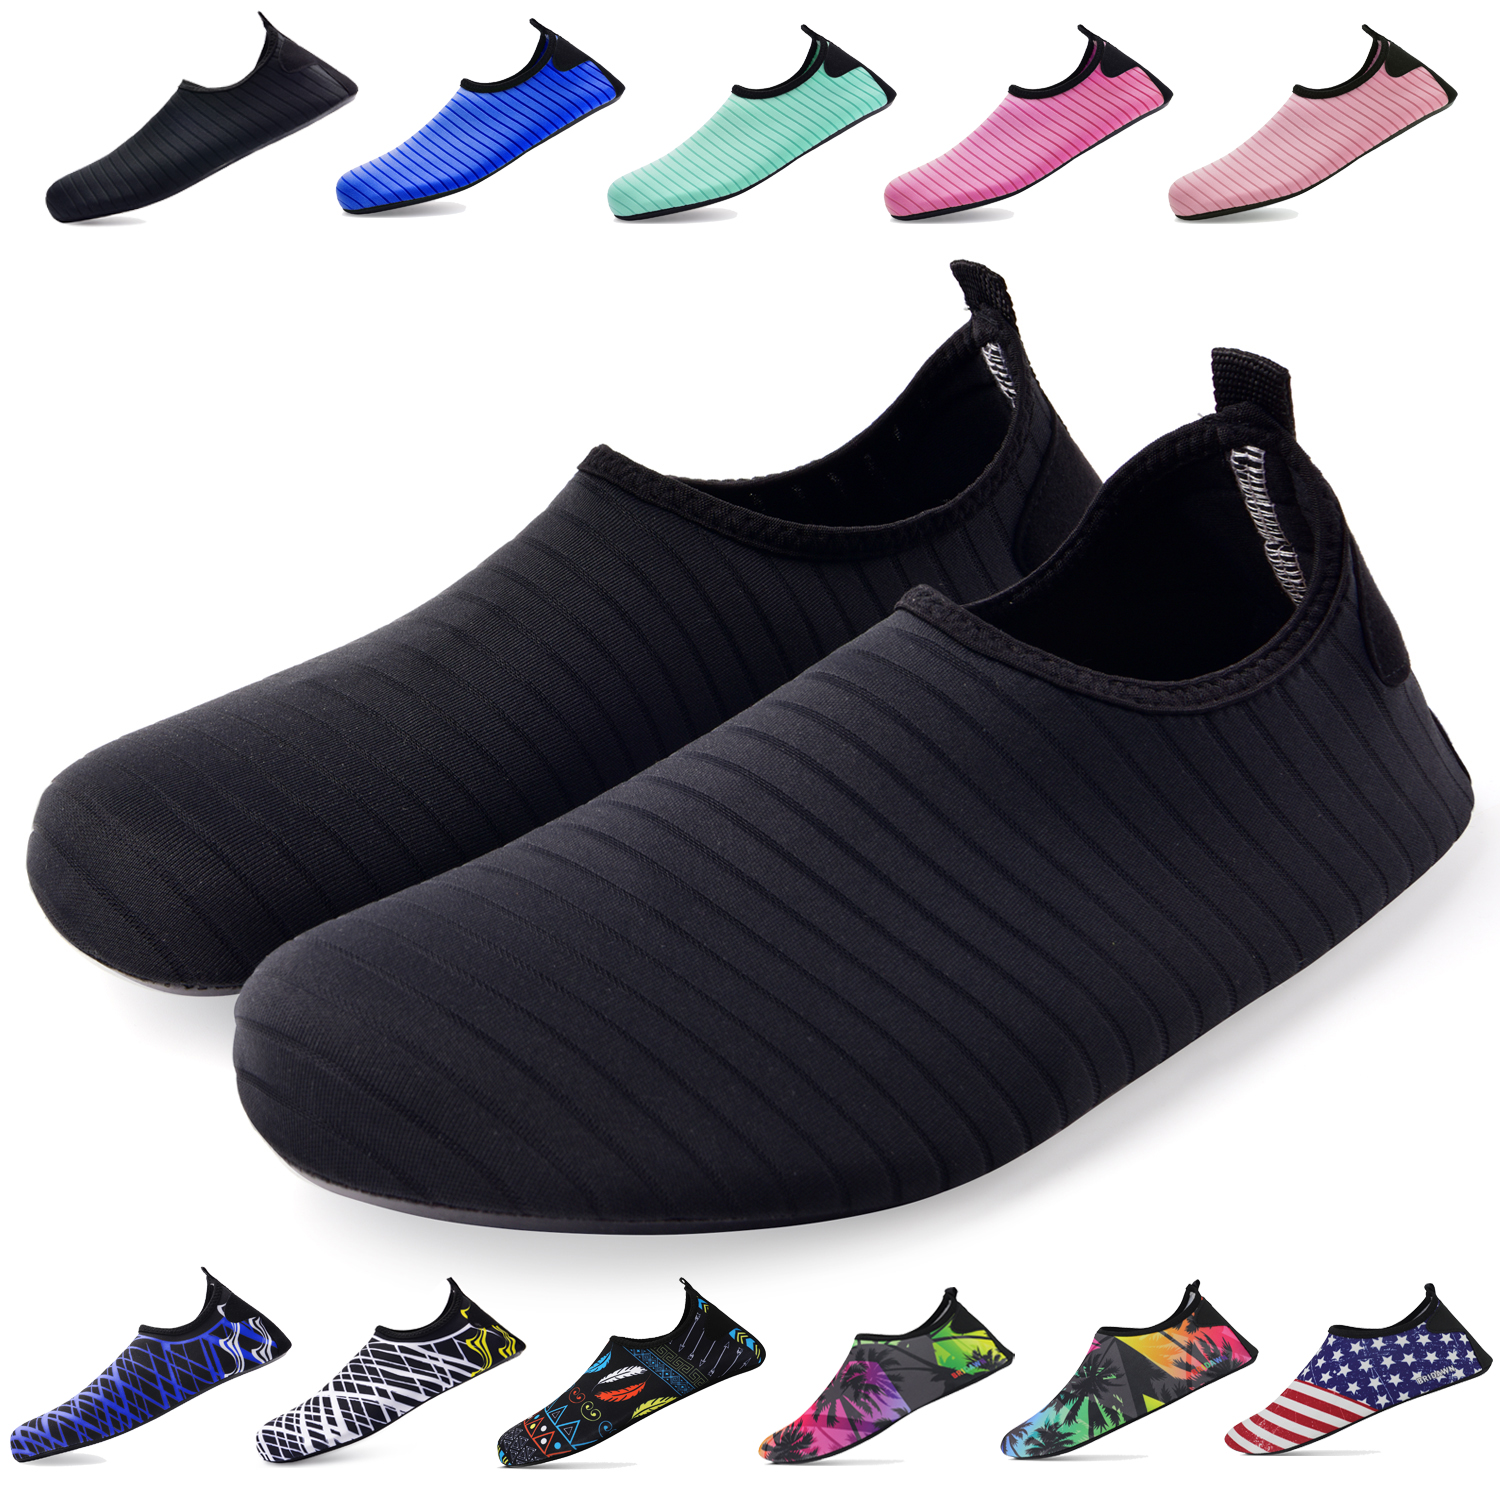 Unisex Breathable Soft Swimming Water Shoes Portable Beach Shoes